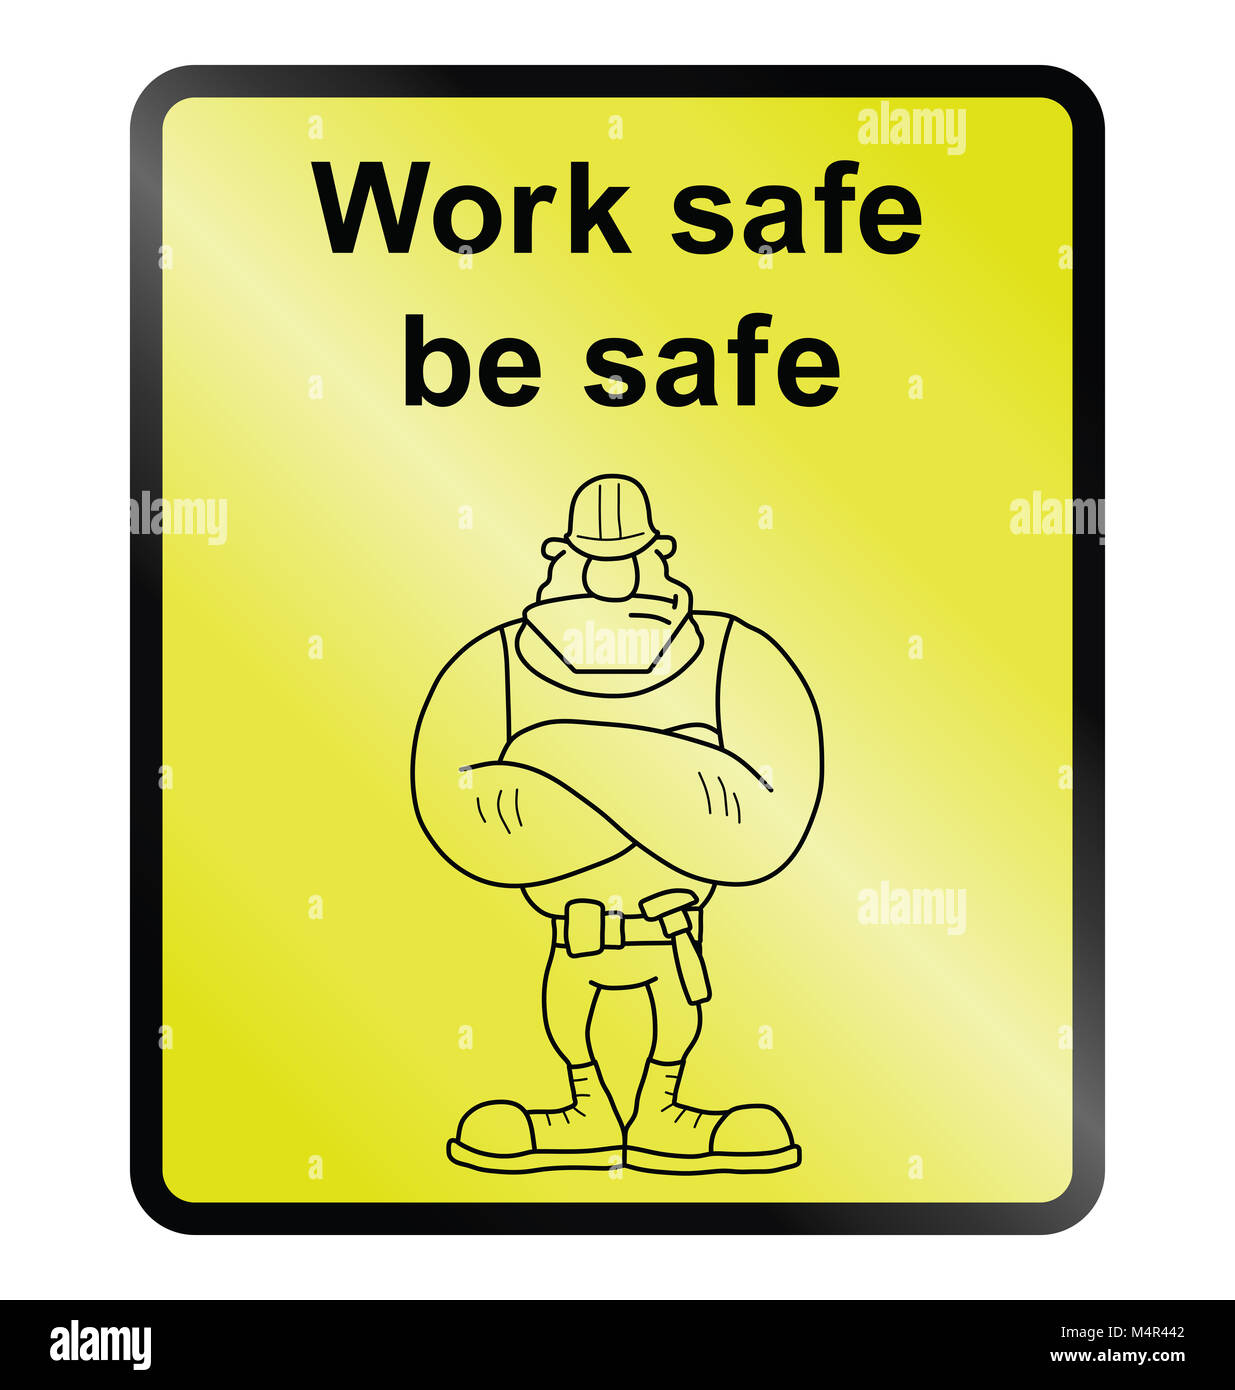 Yellow work safe be safe public information sign isolated on white background - Stock Image